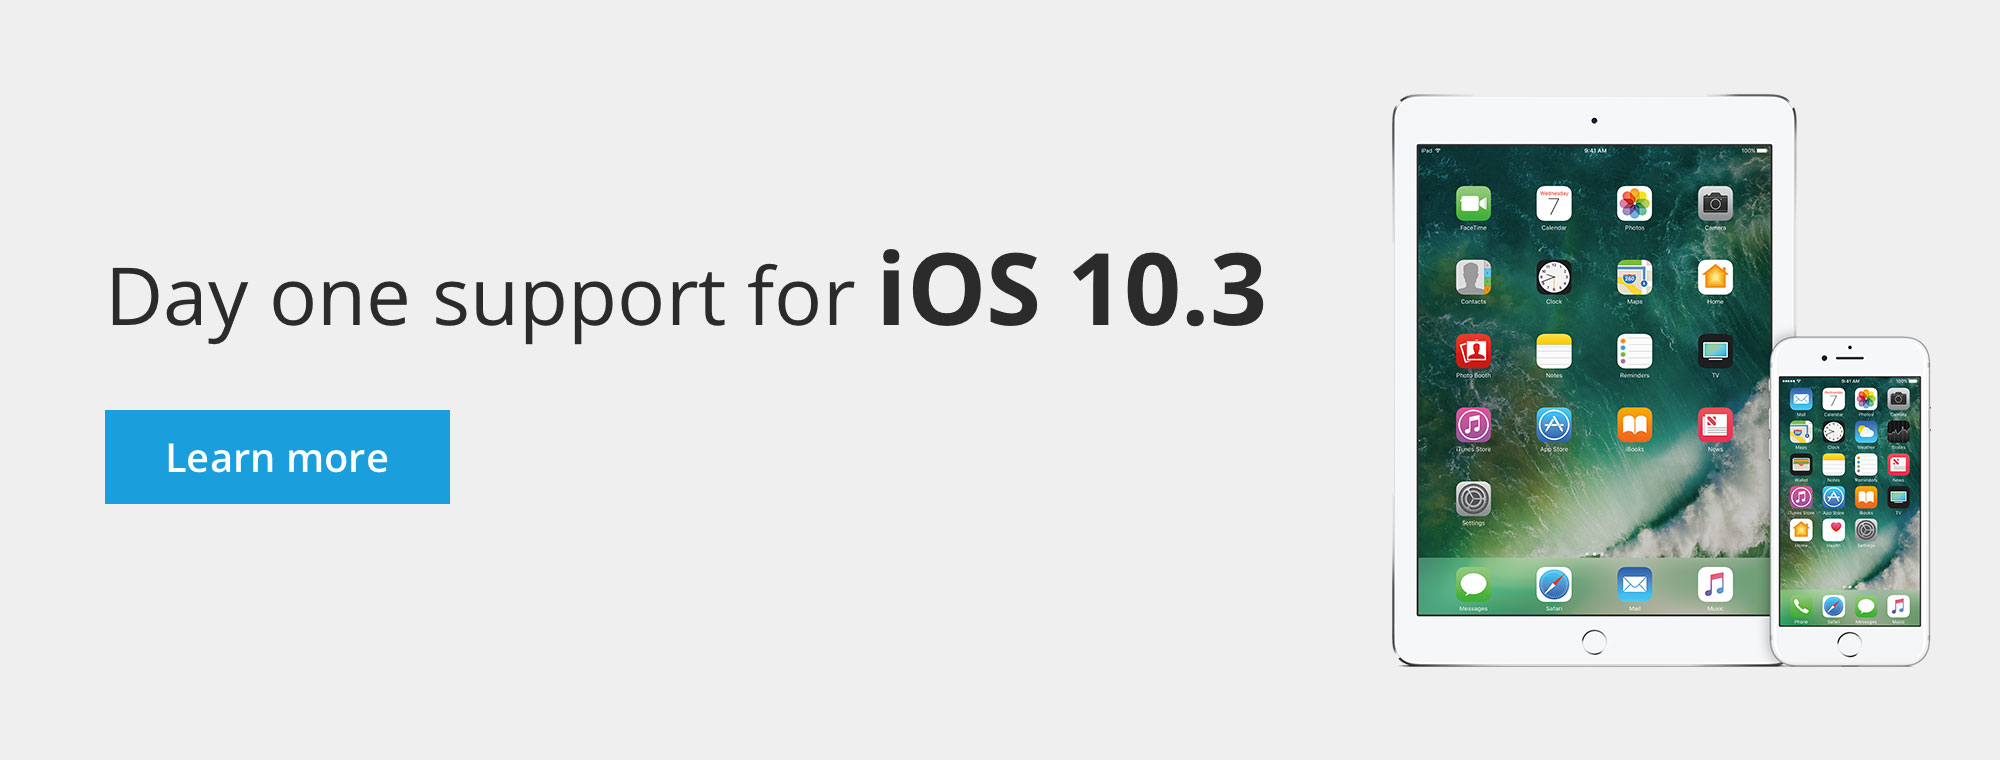 Day once support for iOS 10.3.